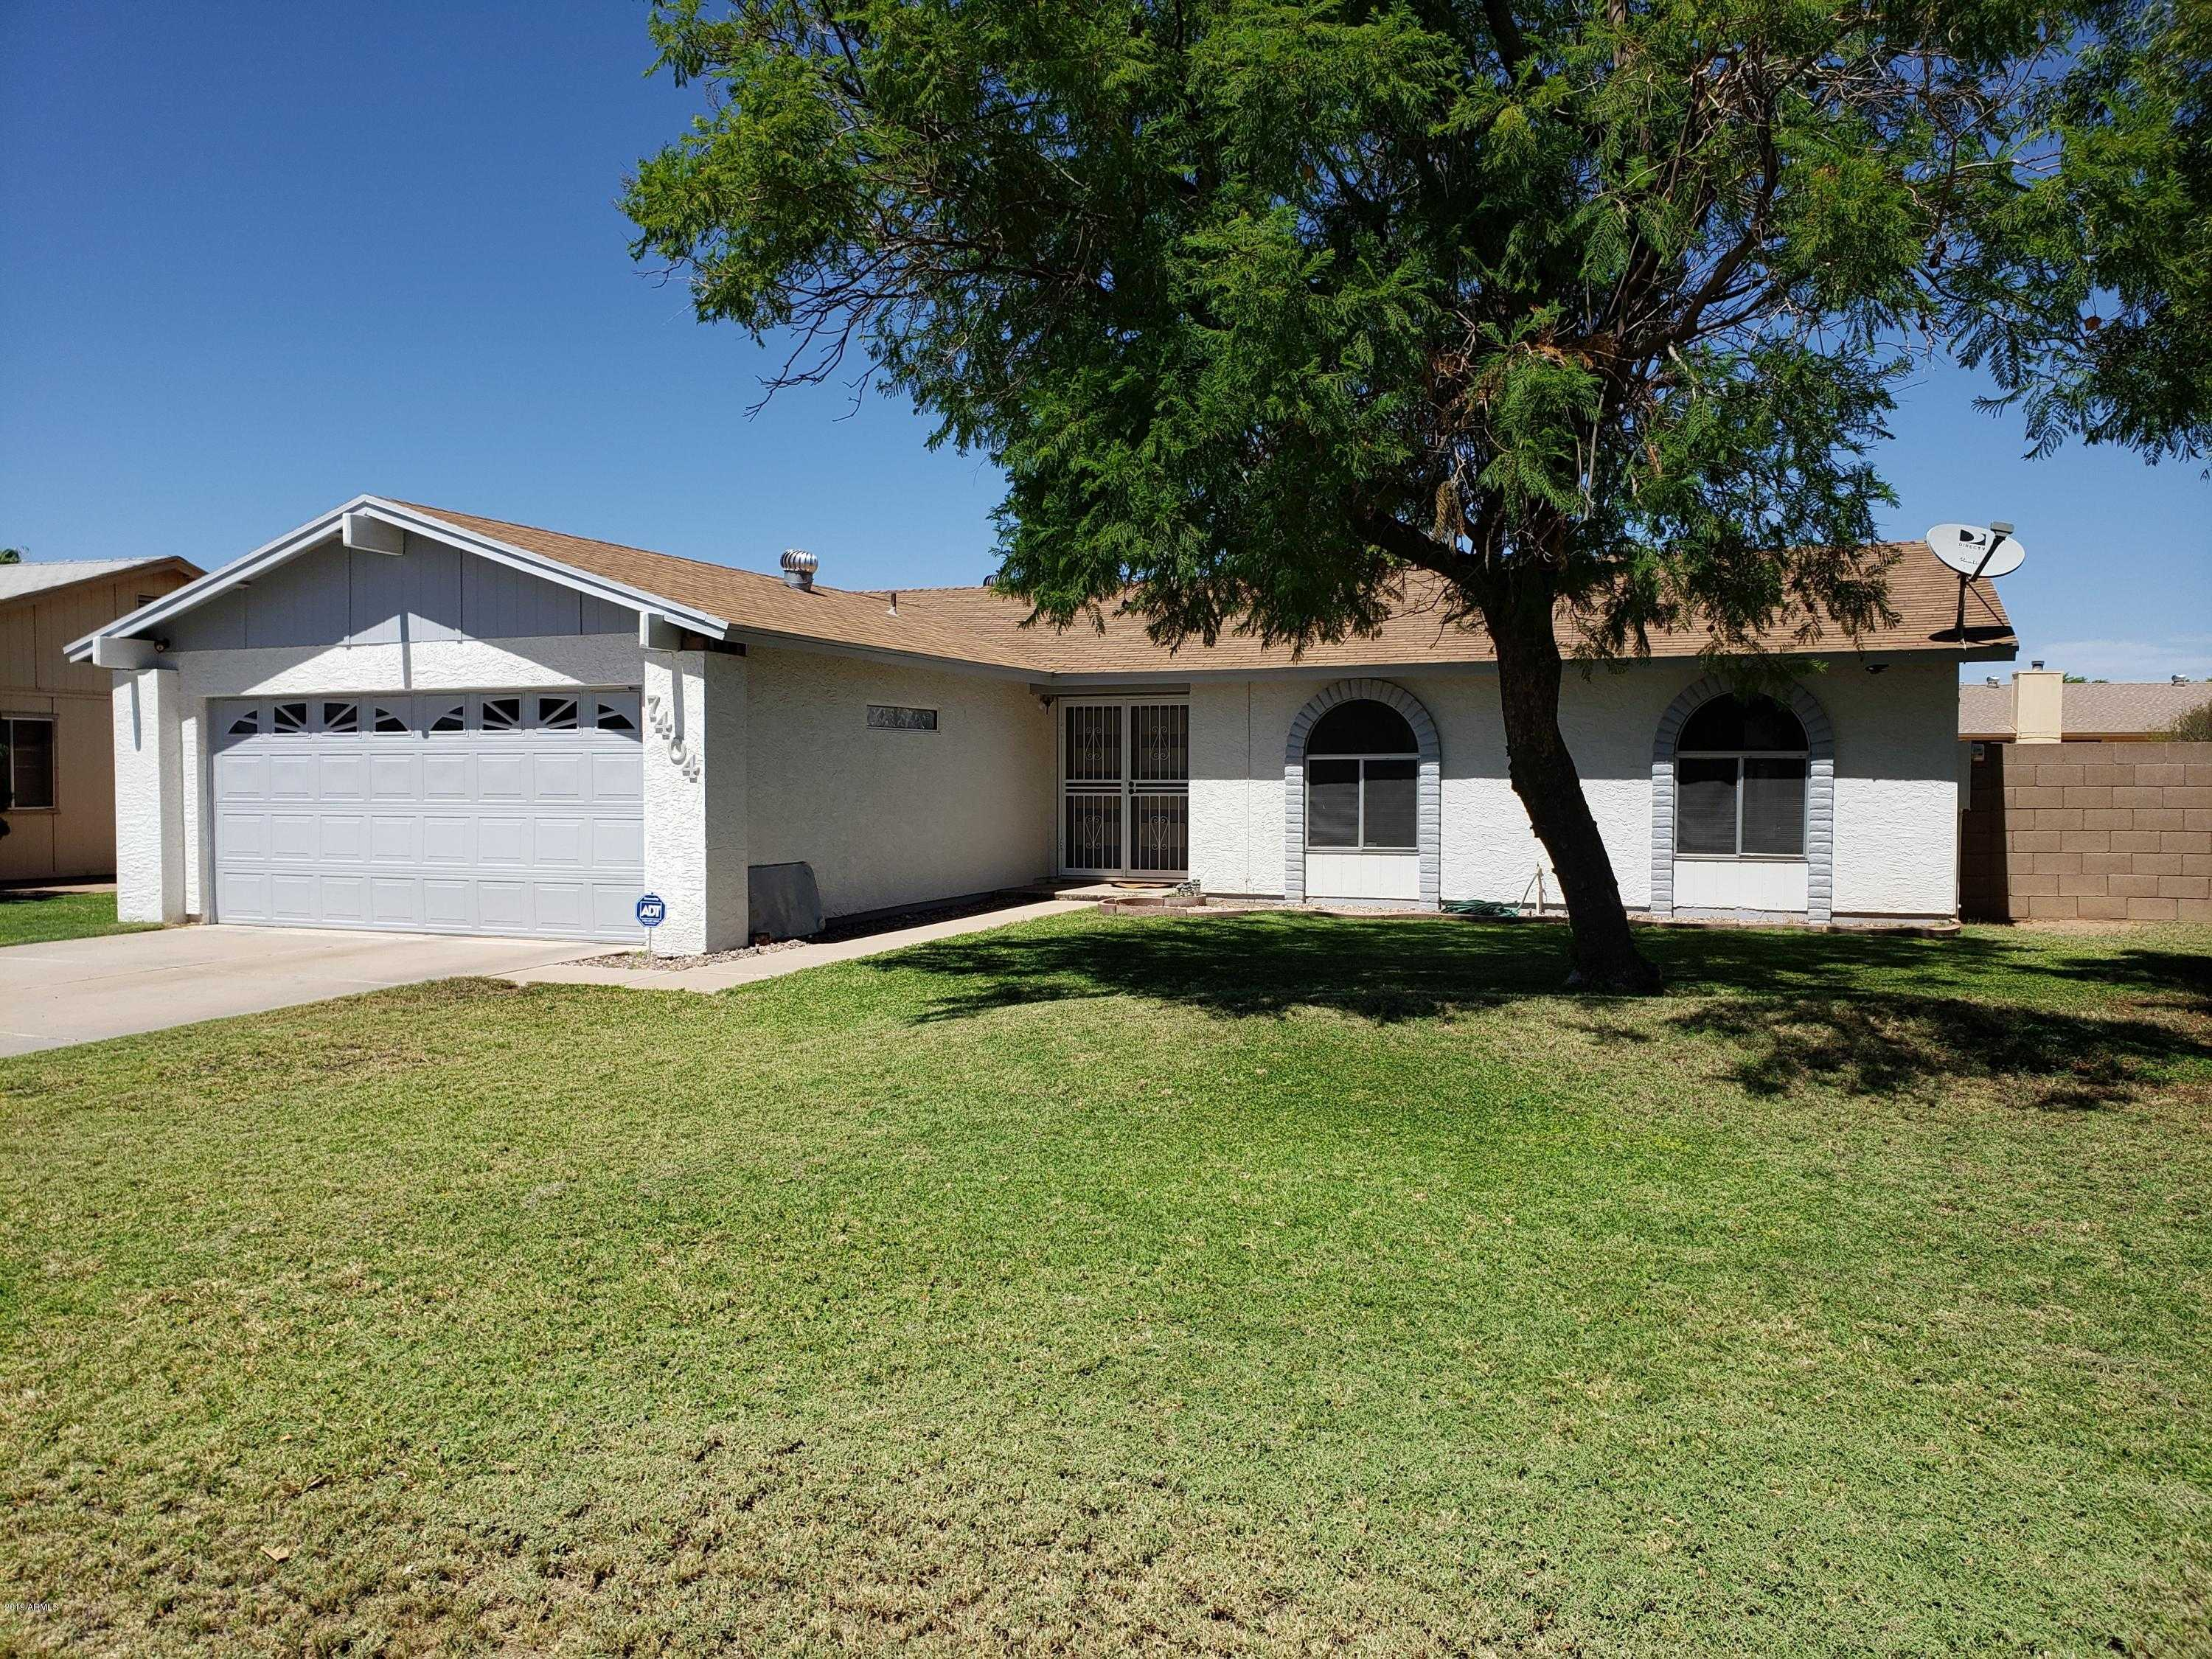 $240,000 - 3Br/2Ba - Home for Sale in Park View West Unit 3 Lot 1-206, Peoria